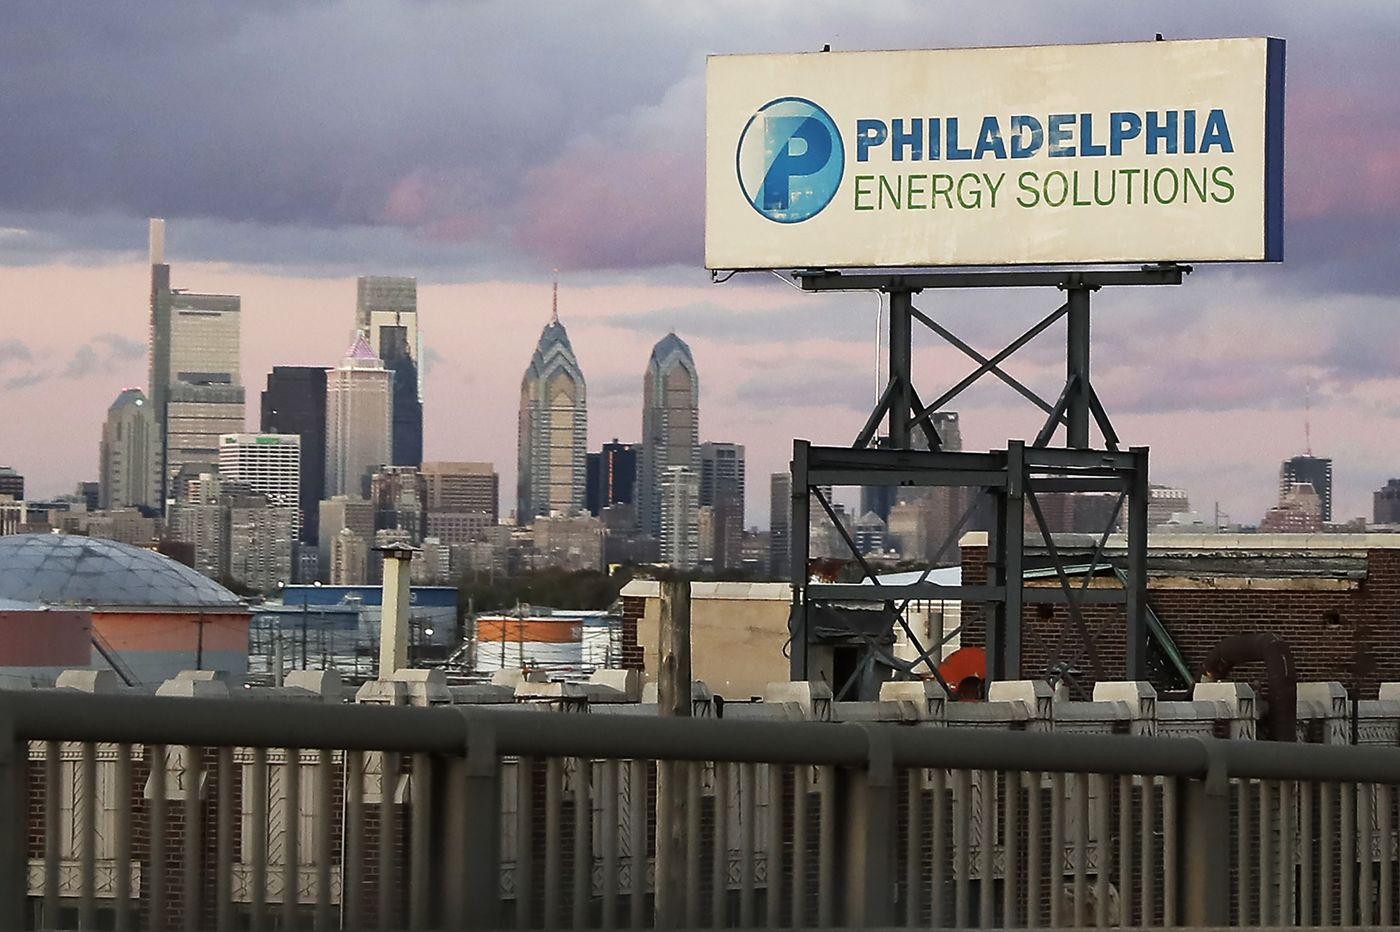 Chicago developer Hilco's $240 million bid wins auction for bankrupt Philadelphia refinery